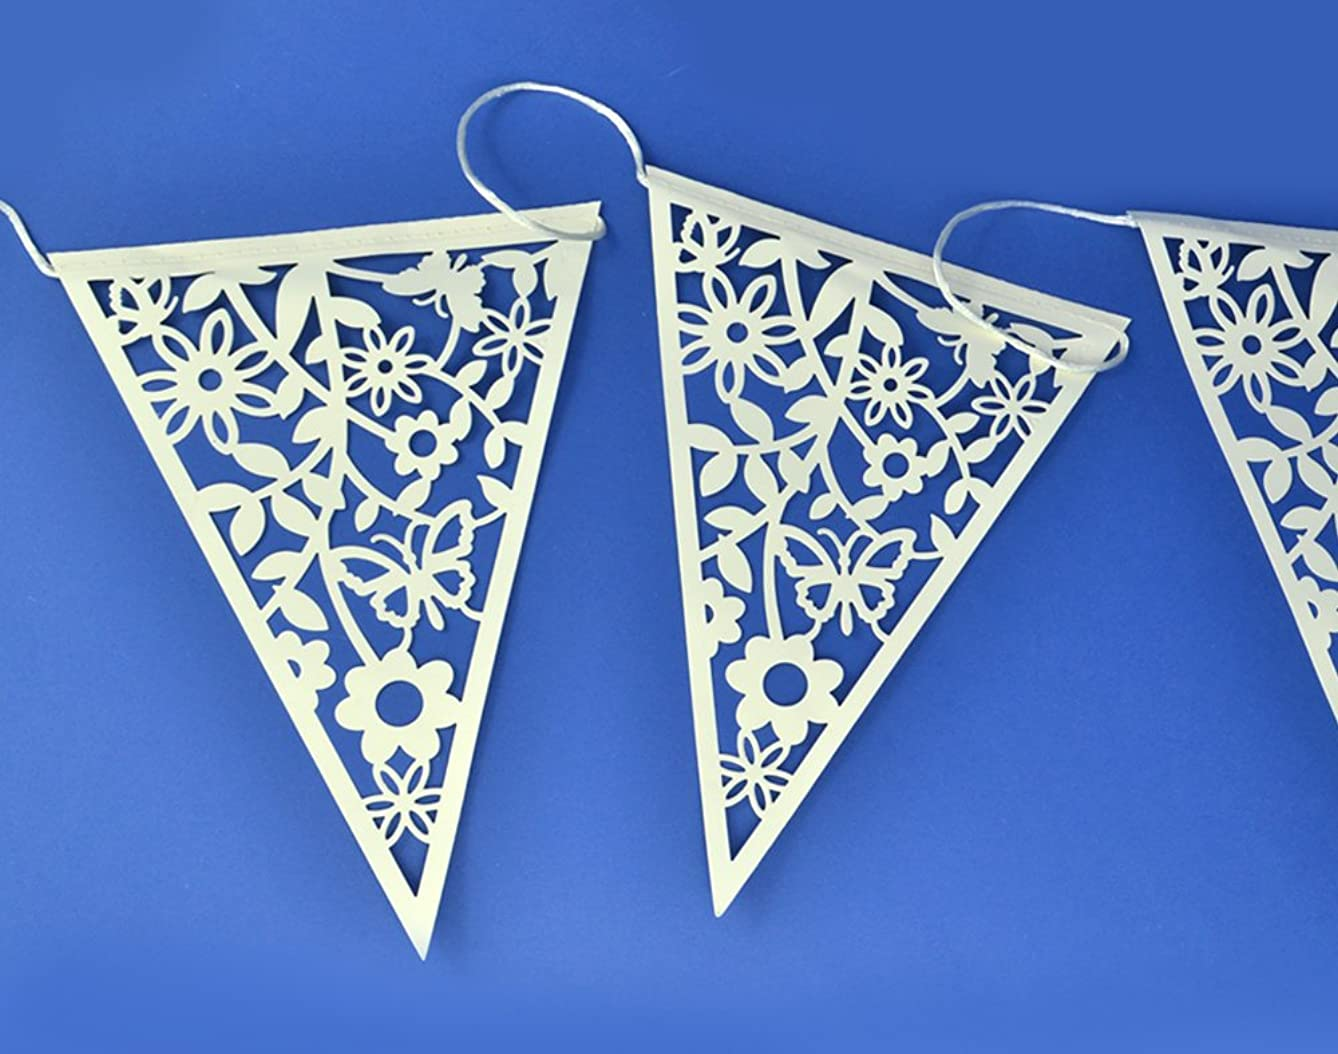 8m Ivory Paper Lace Bunting - 20 Flags | Wedding Celebrations Party Decorations